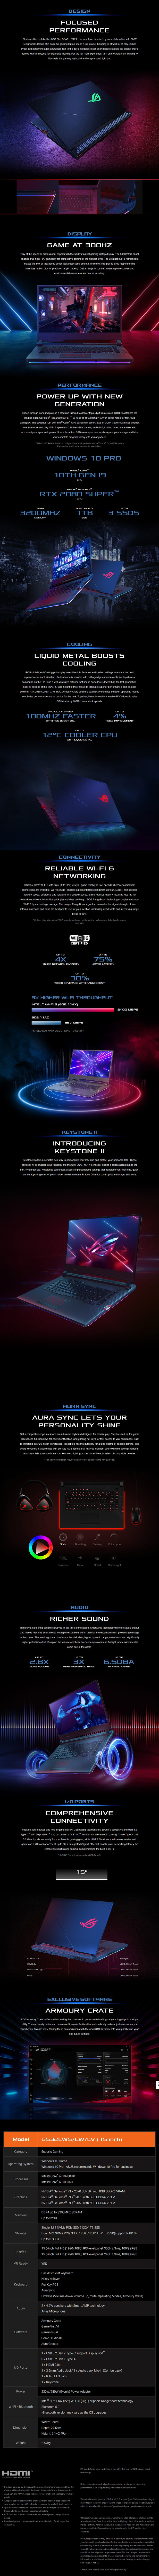 """ASUS ROG Strix SCAR 15 15.6"""" 240Hz Gaming Laptop i7-10875H 8GB 1TB RTX2070 W10H - Overview 1"""